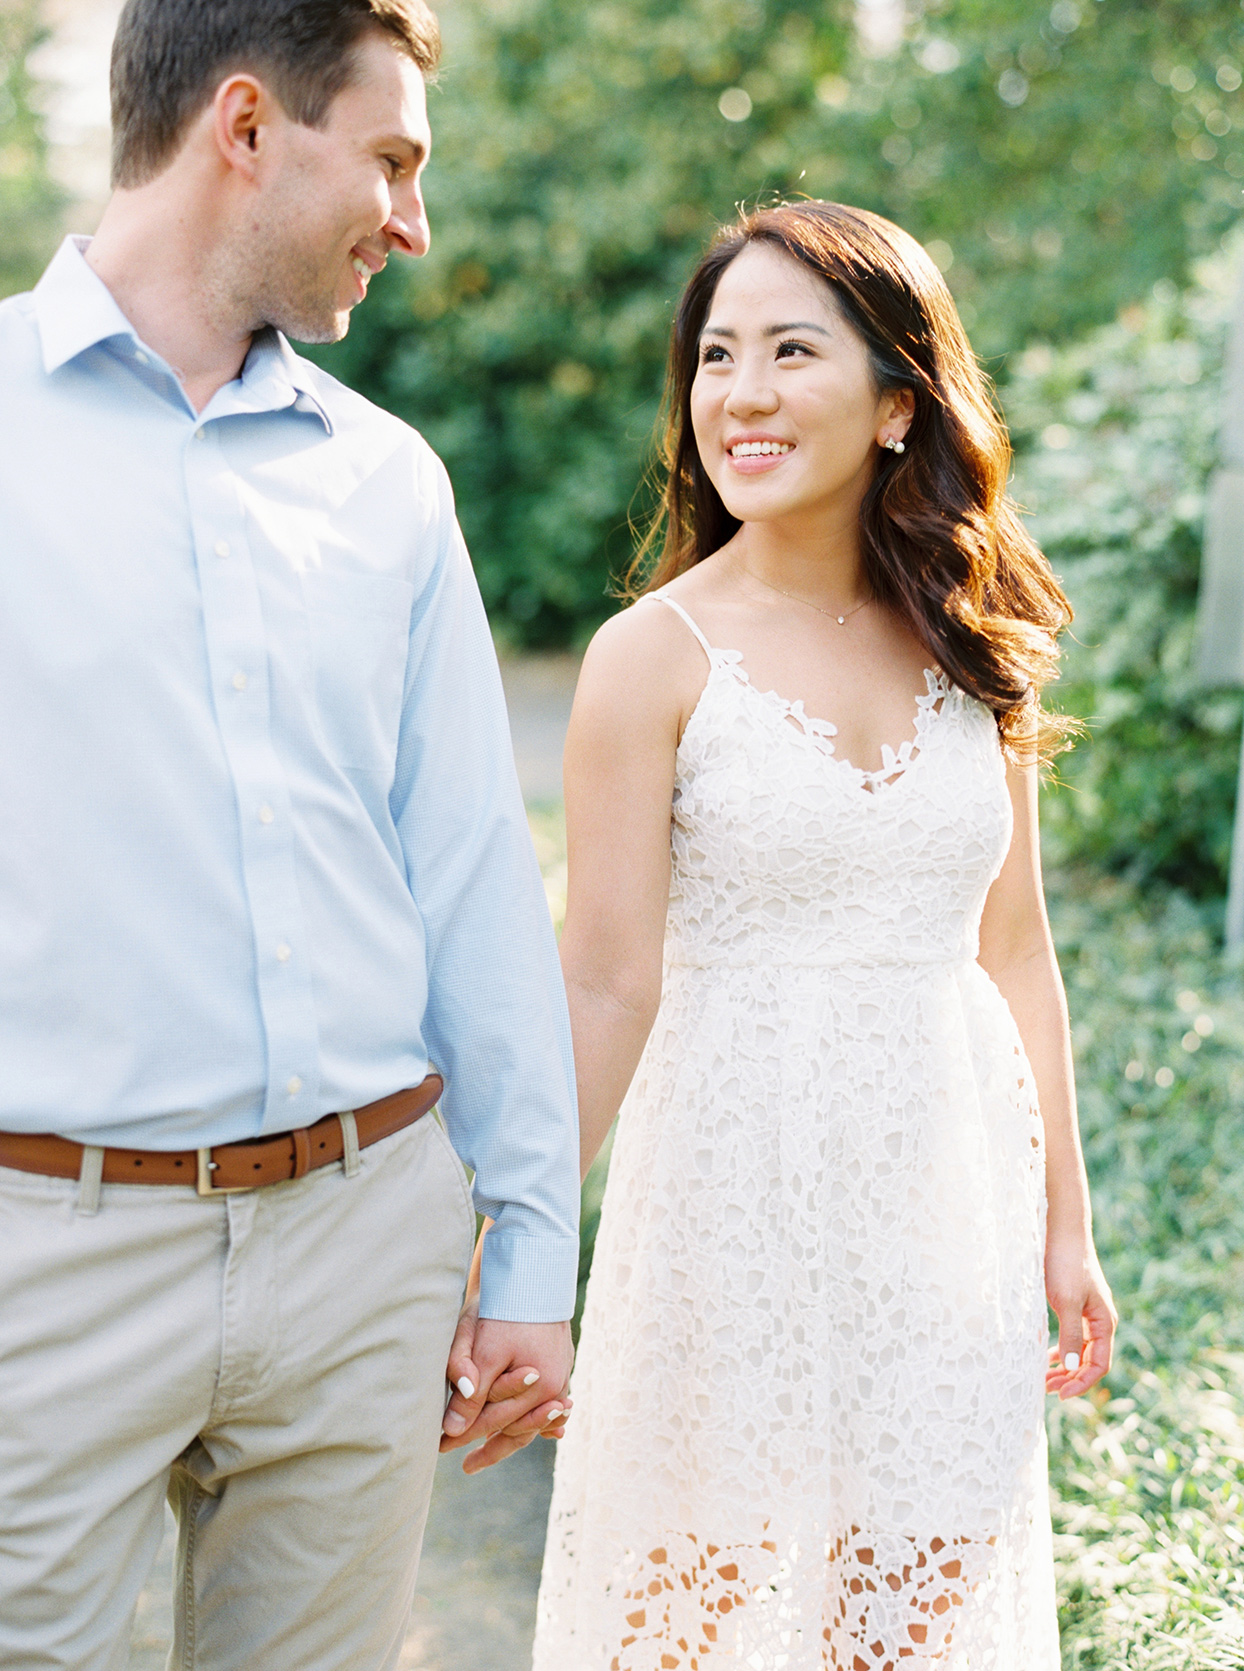 bride in white lace brunch attire and groom in light blue shirt